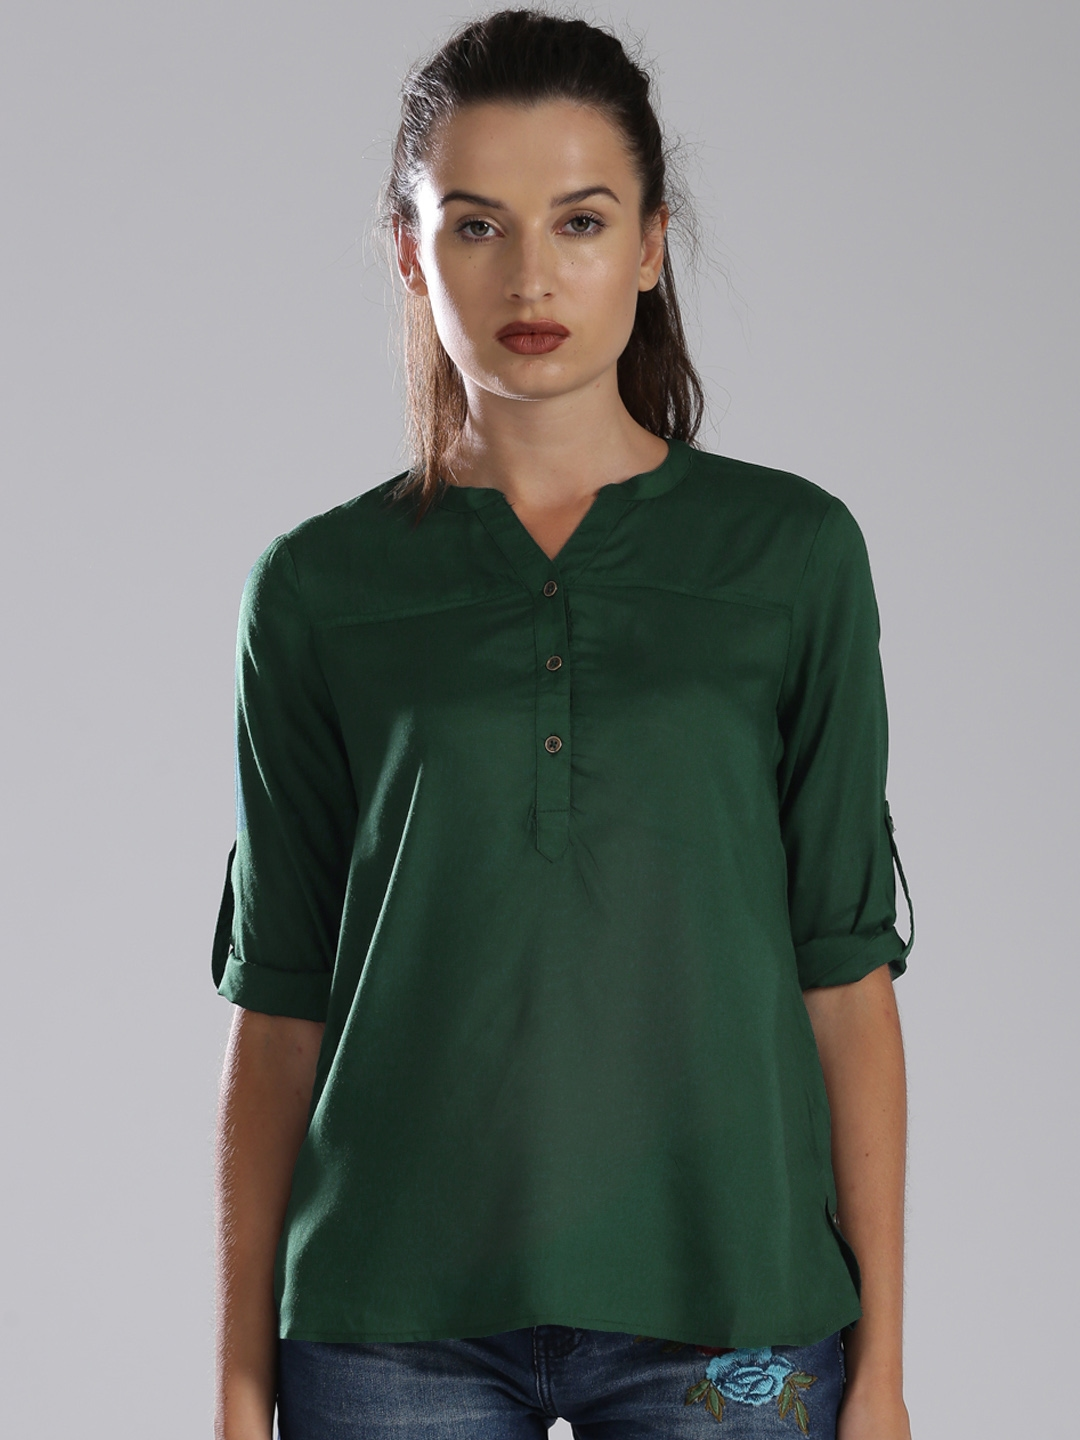 6a6c73d8 Buy Bossini Women Green Solid Shirt Style Top - Tops for Women ...